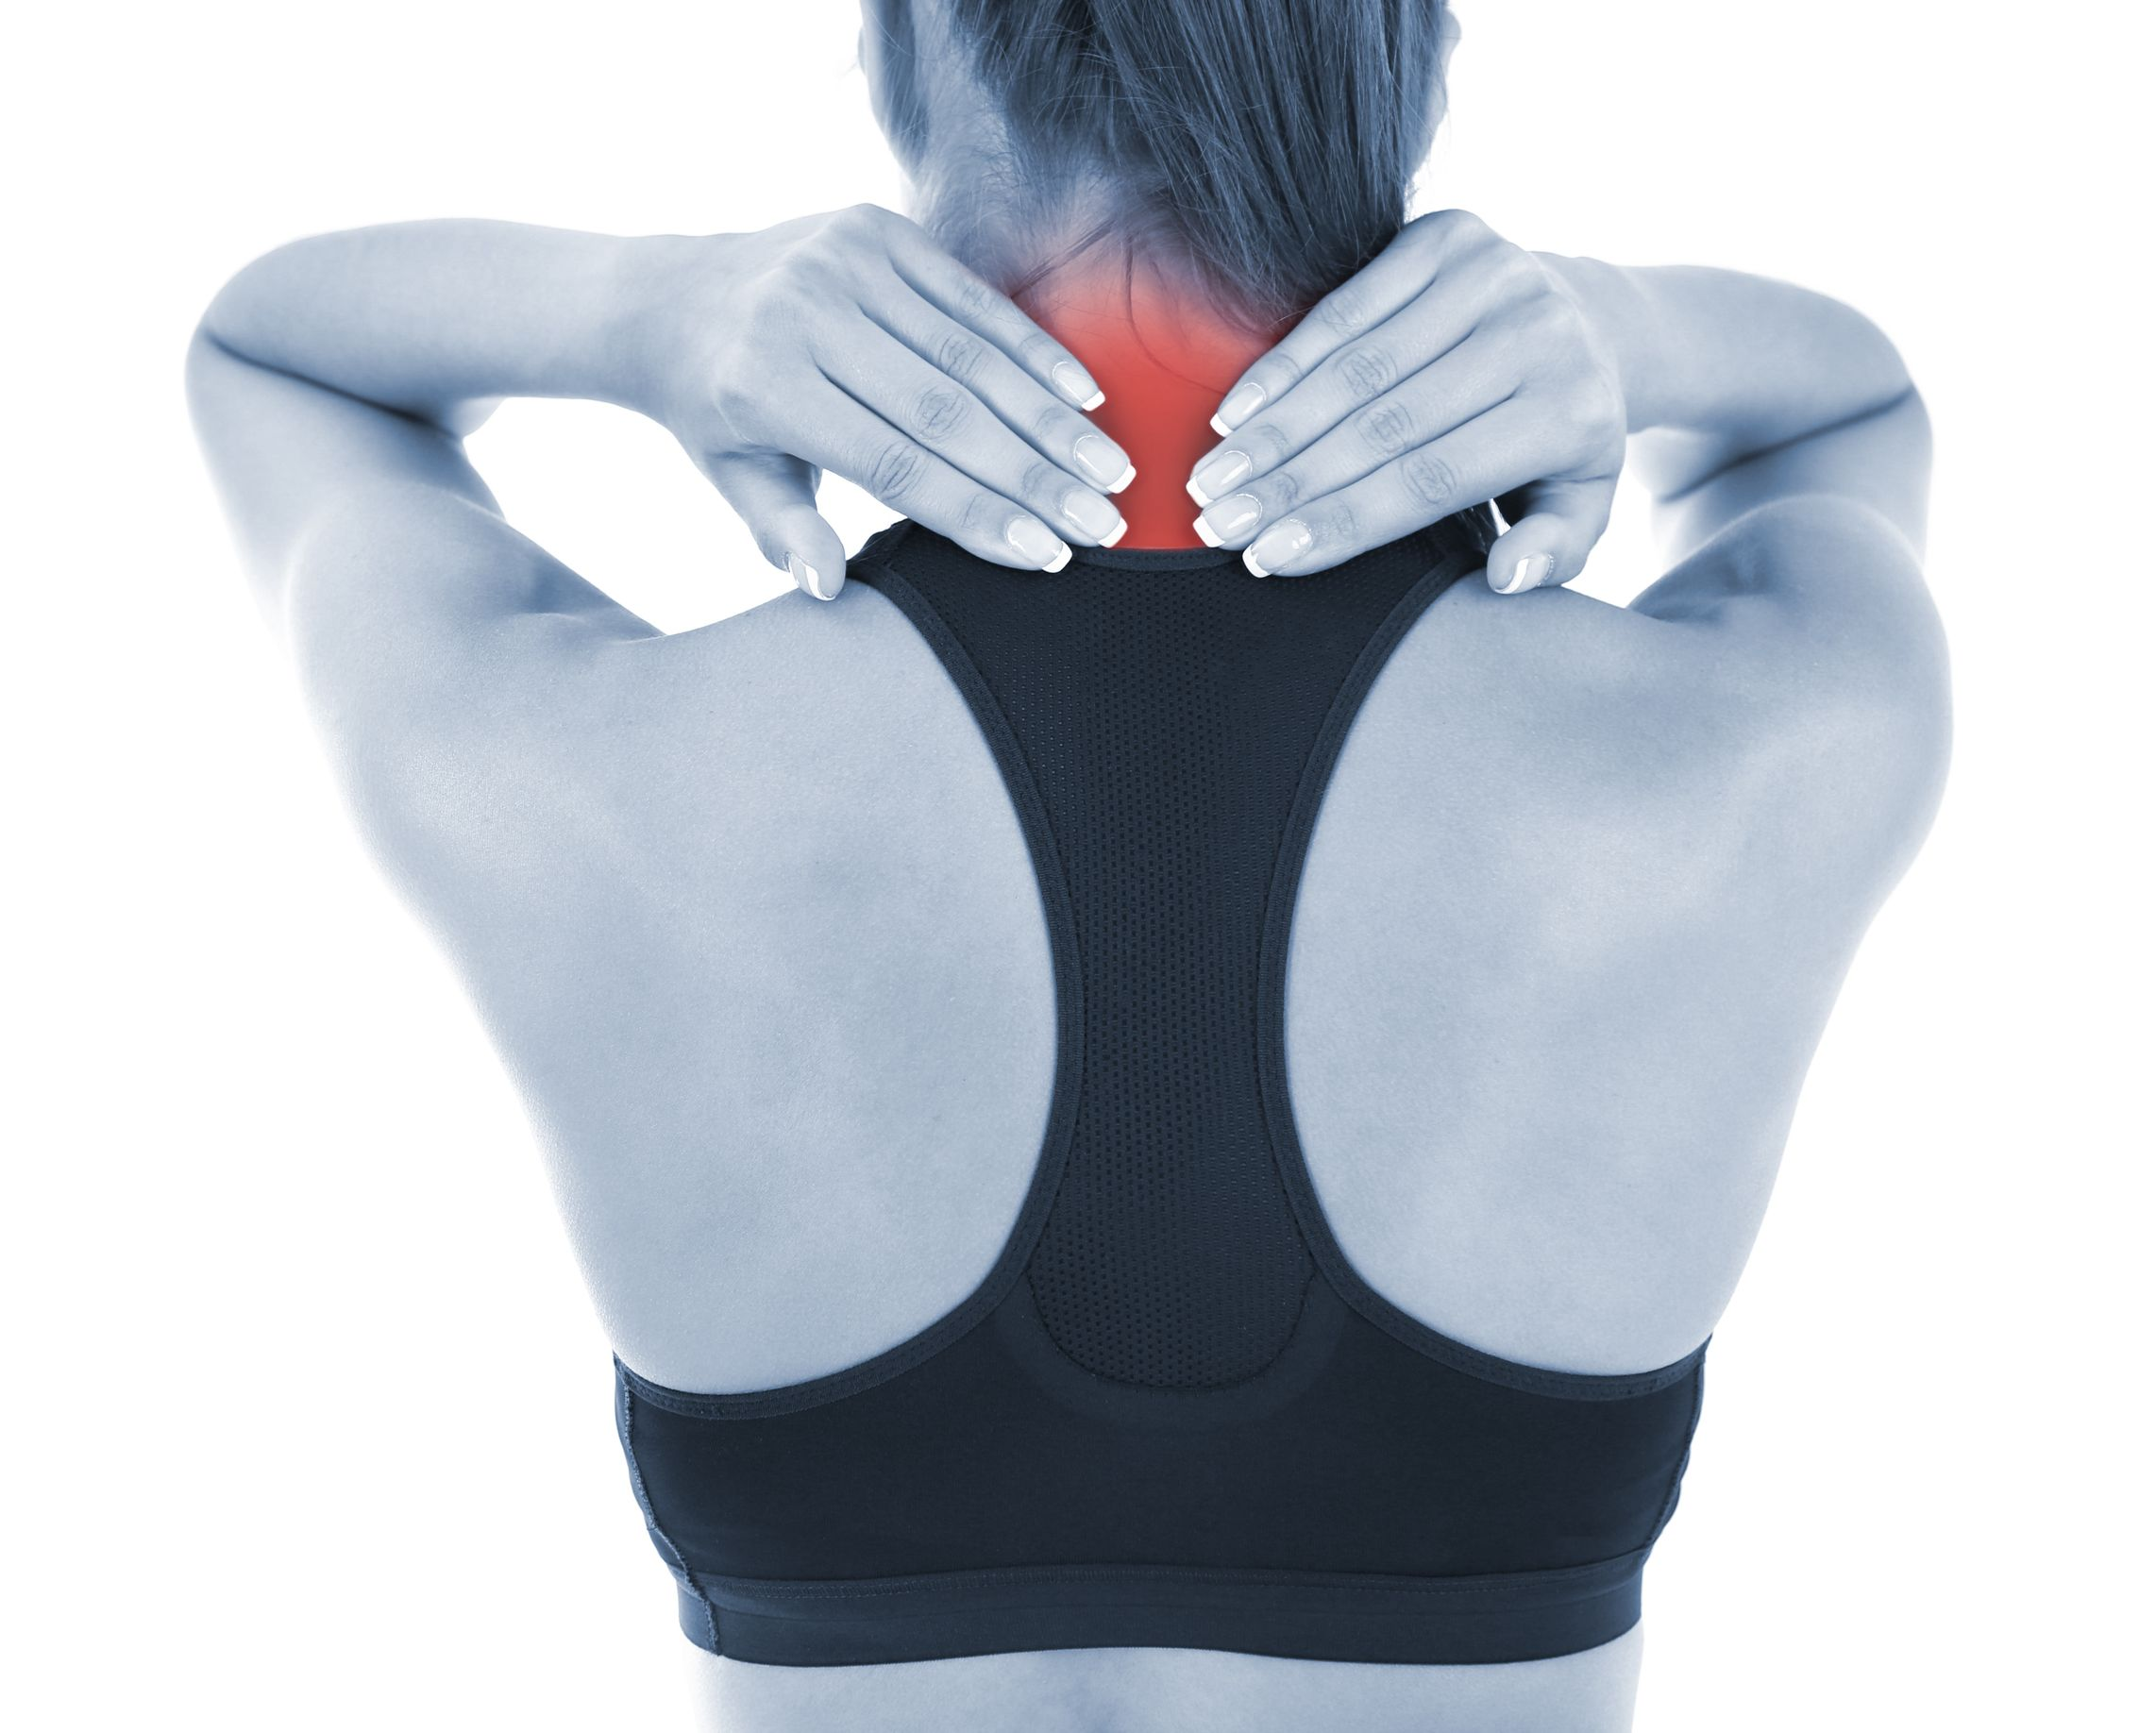 Chiropractic Treatment for Neck Issues